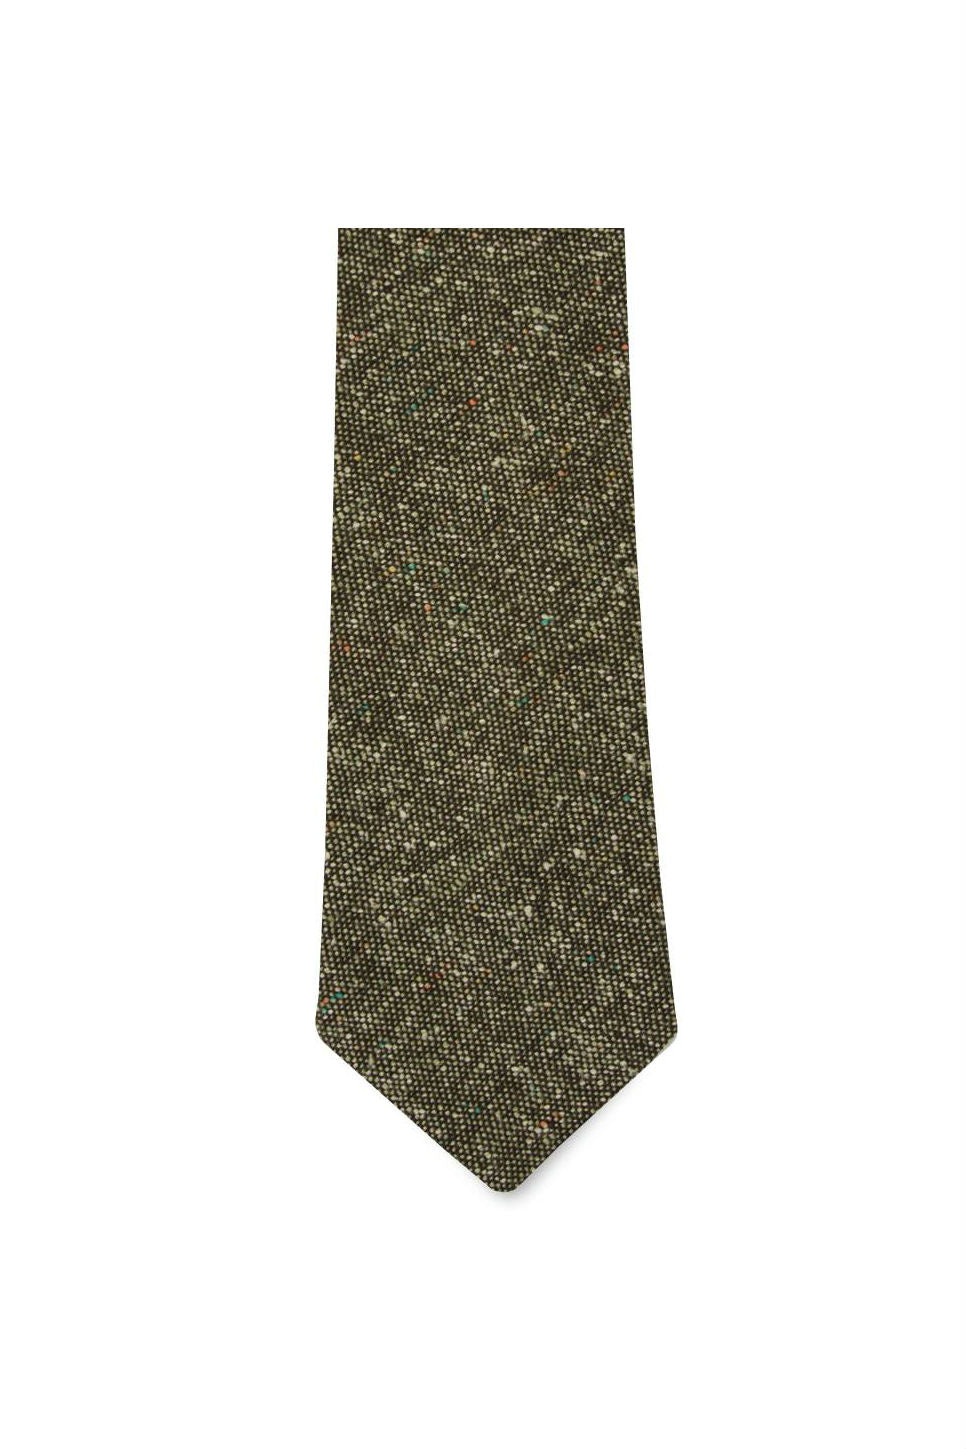 THE ORTEGA TIE Olive Green